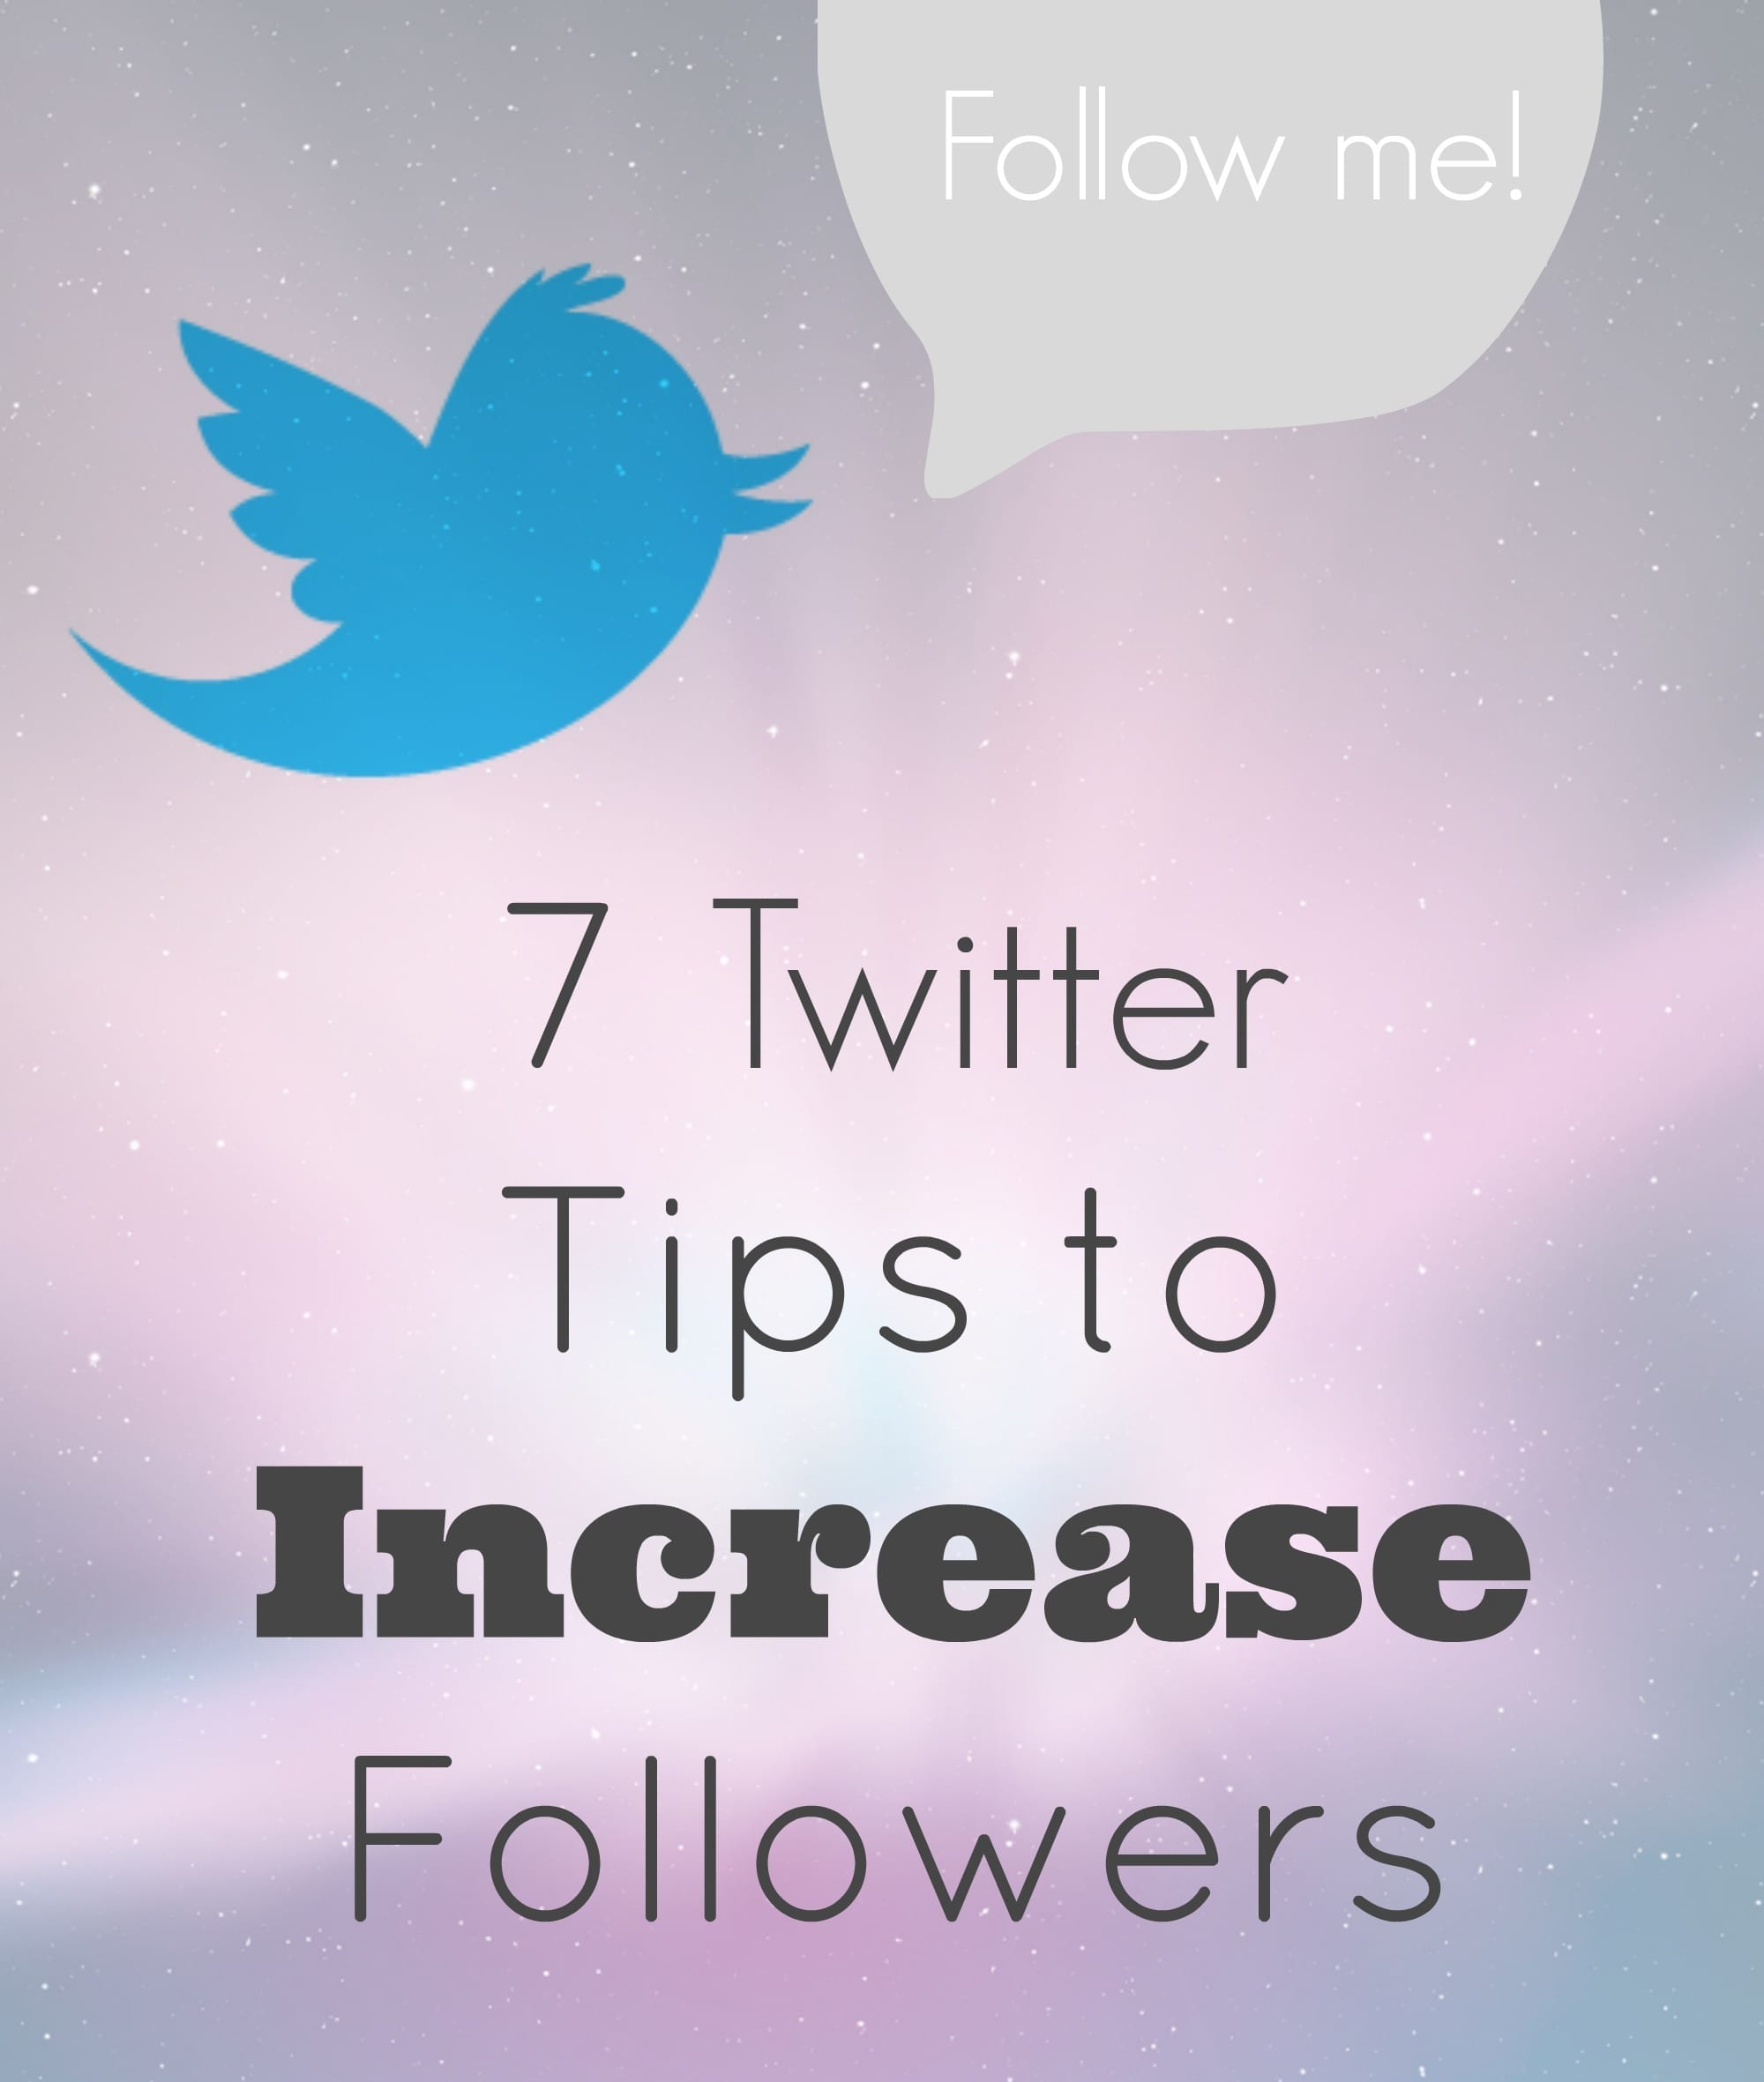 Blogging Tips: 7 Twitter Tips to Increase Followers